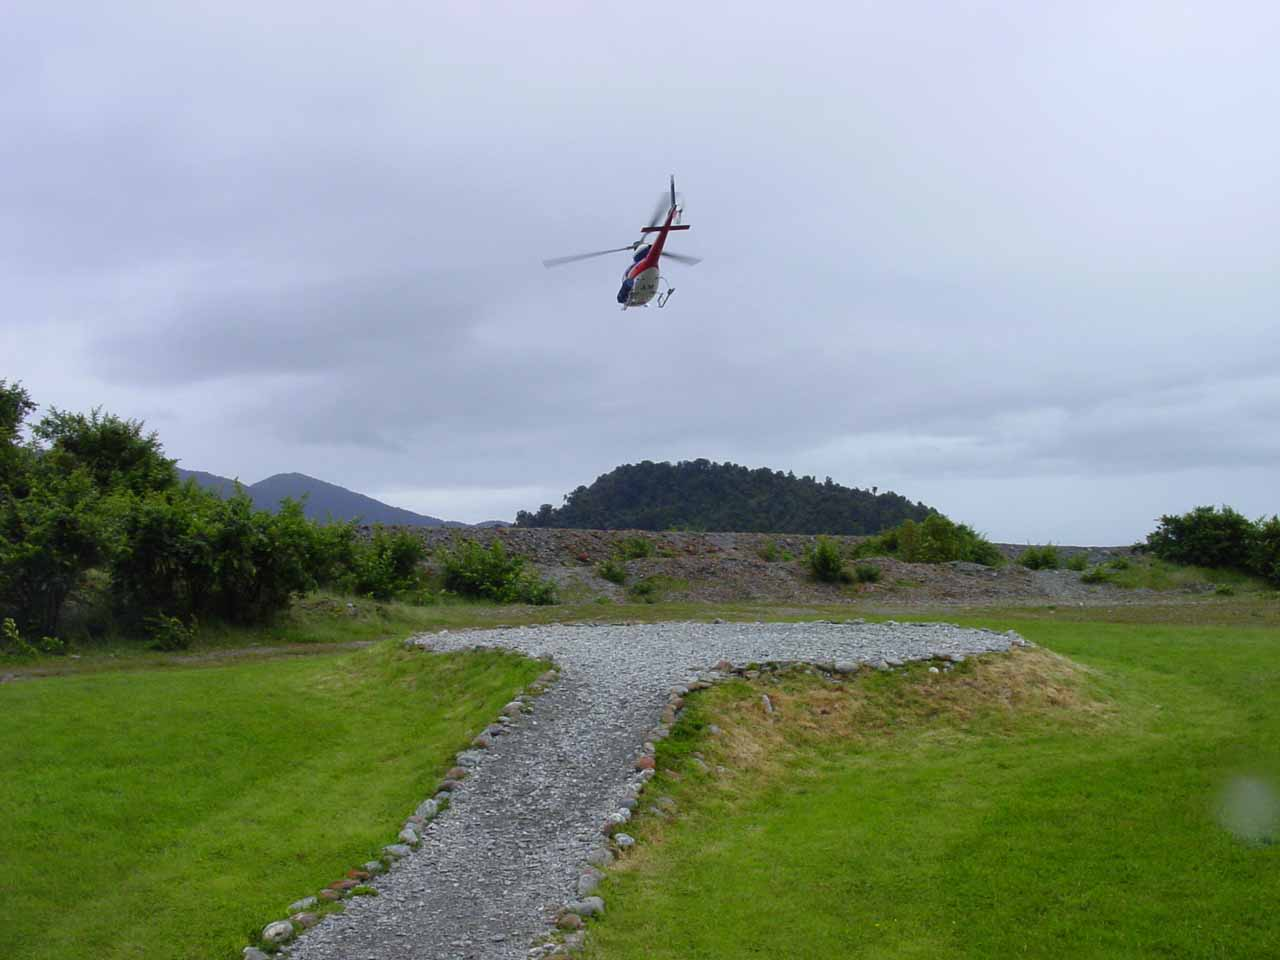 Waiting at the helipad for our turn to chopper our way up to the middle of the Franz Josef Glacier